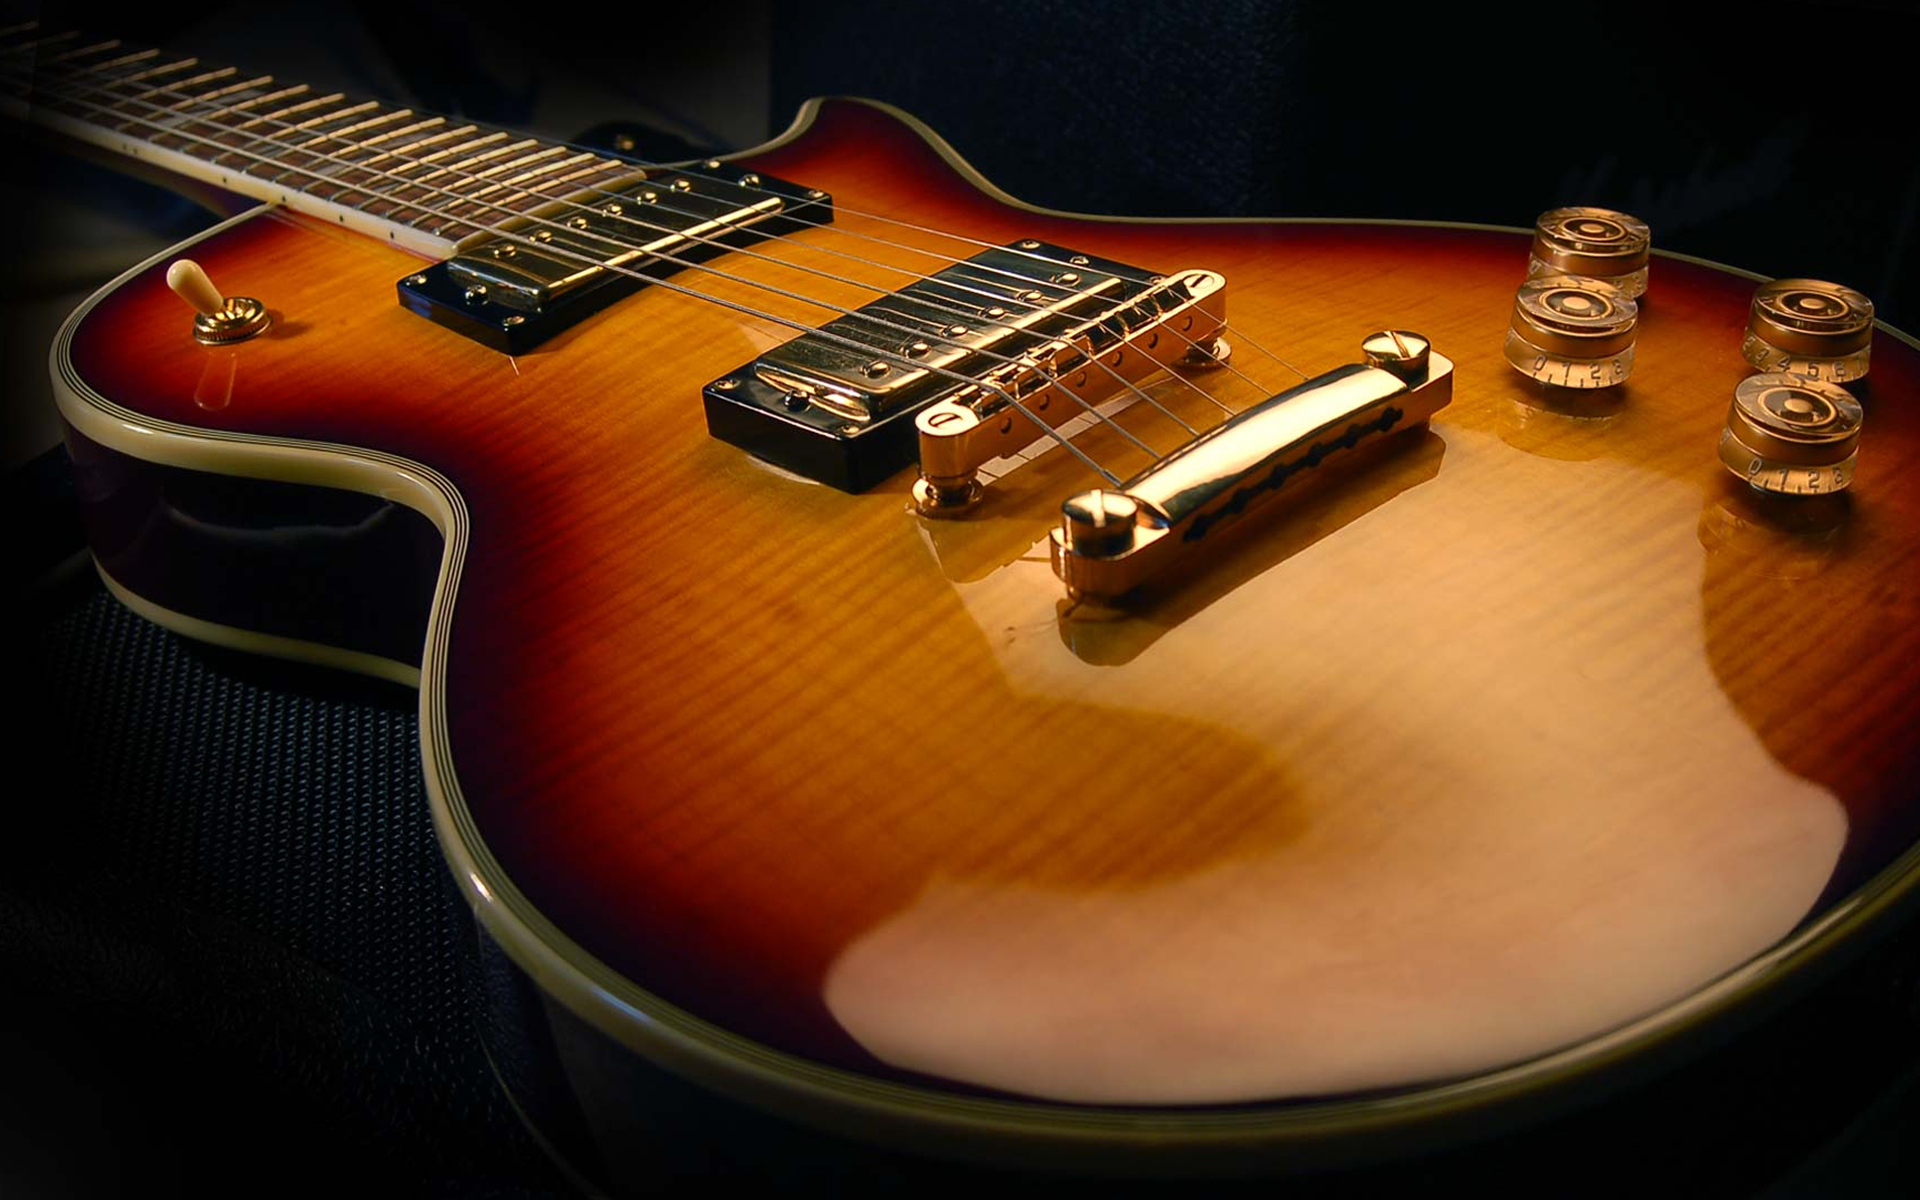 Hd Guitar Wallpaper, Amazing Photos of Guitar 4K Ultra HD | NMgnCP com